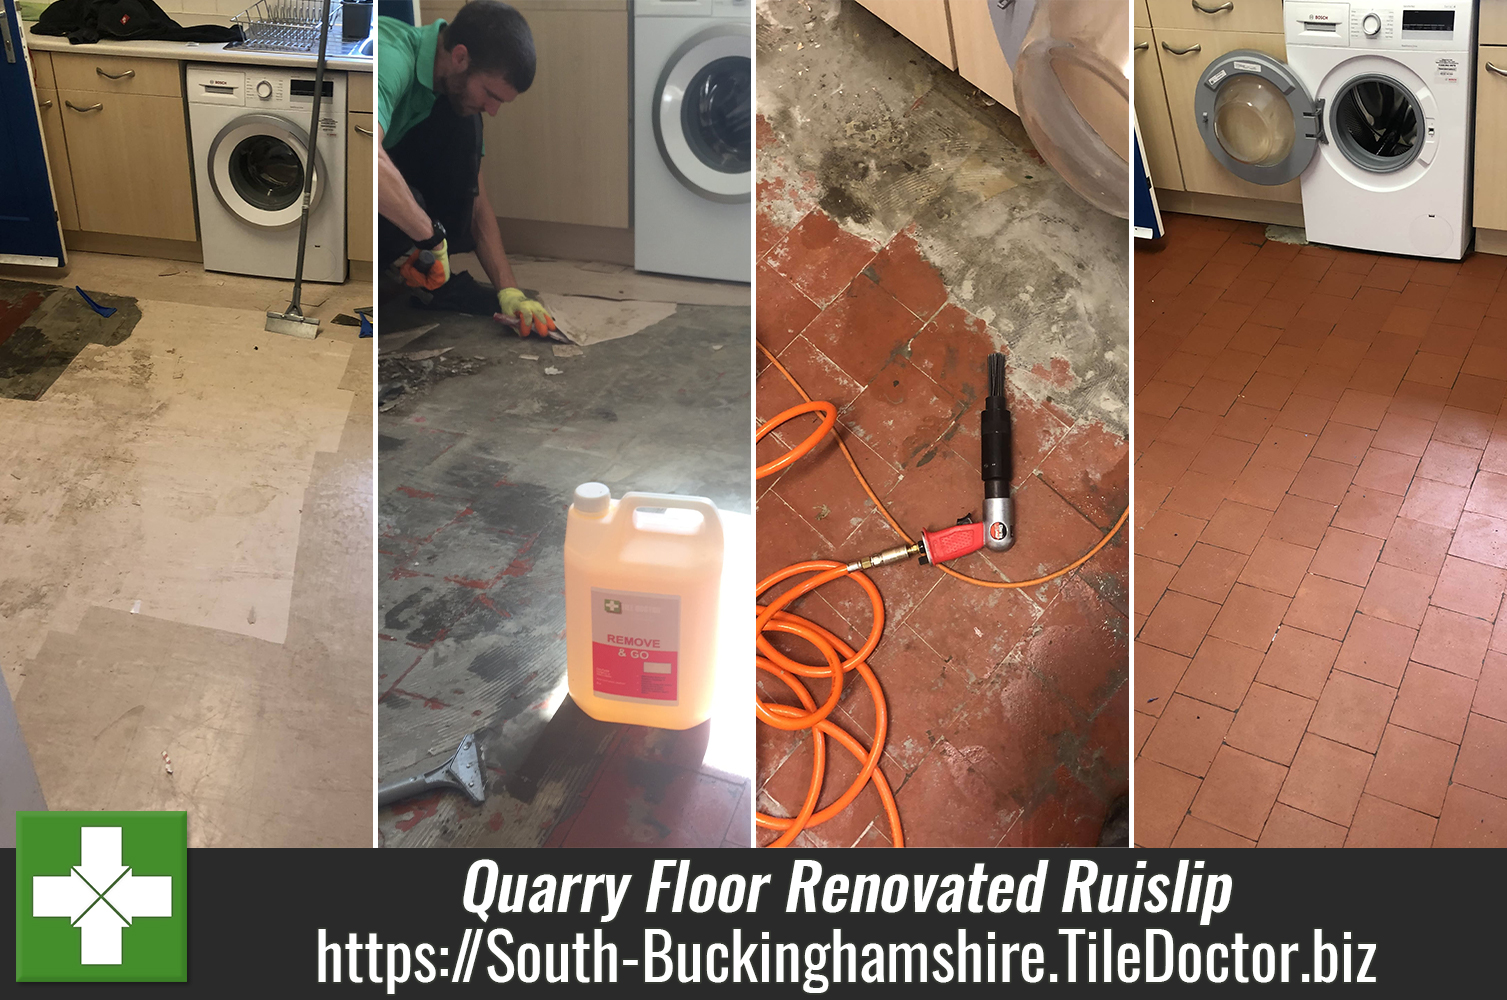 Quarry-Tiled-Floor-Before-After-Renovation-Ruislip